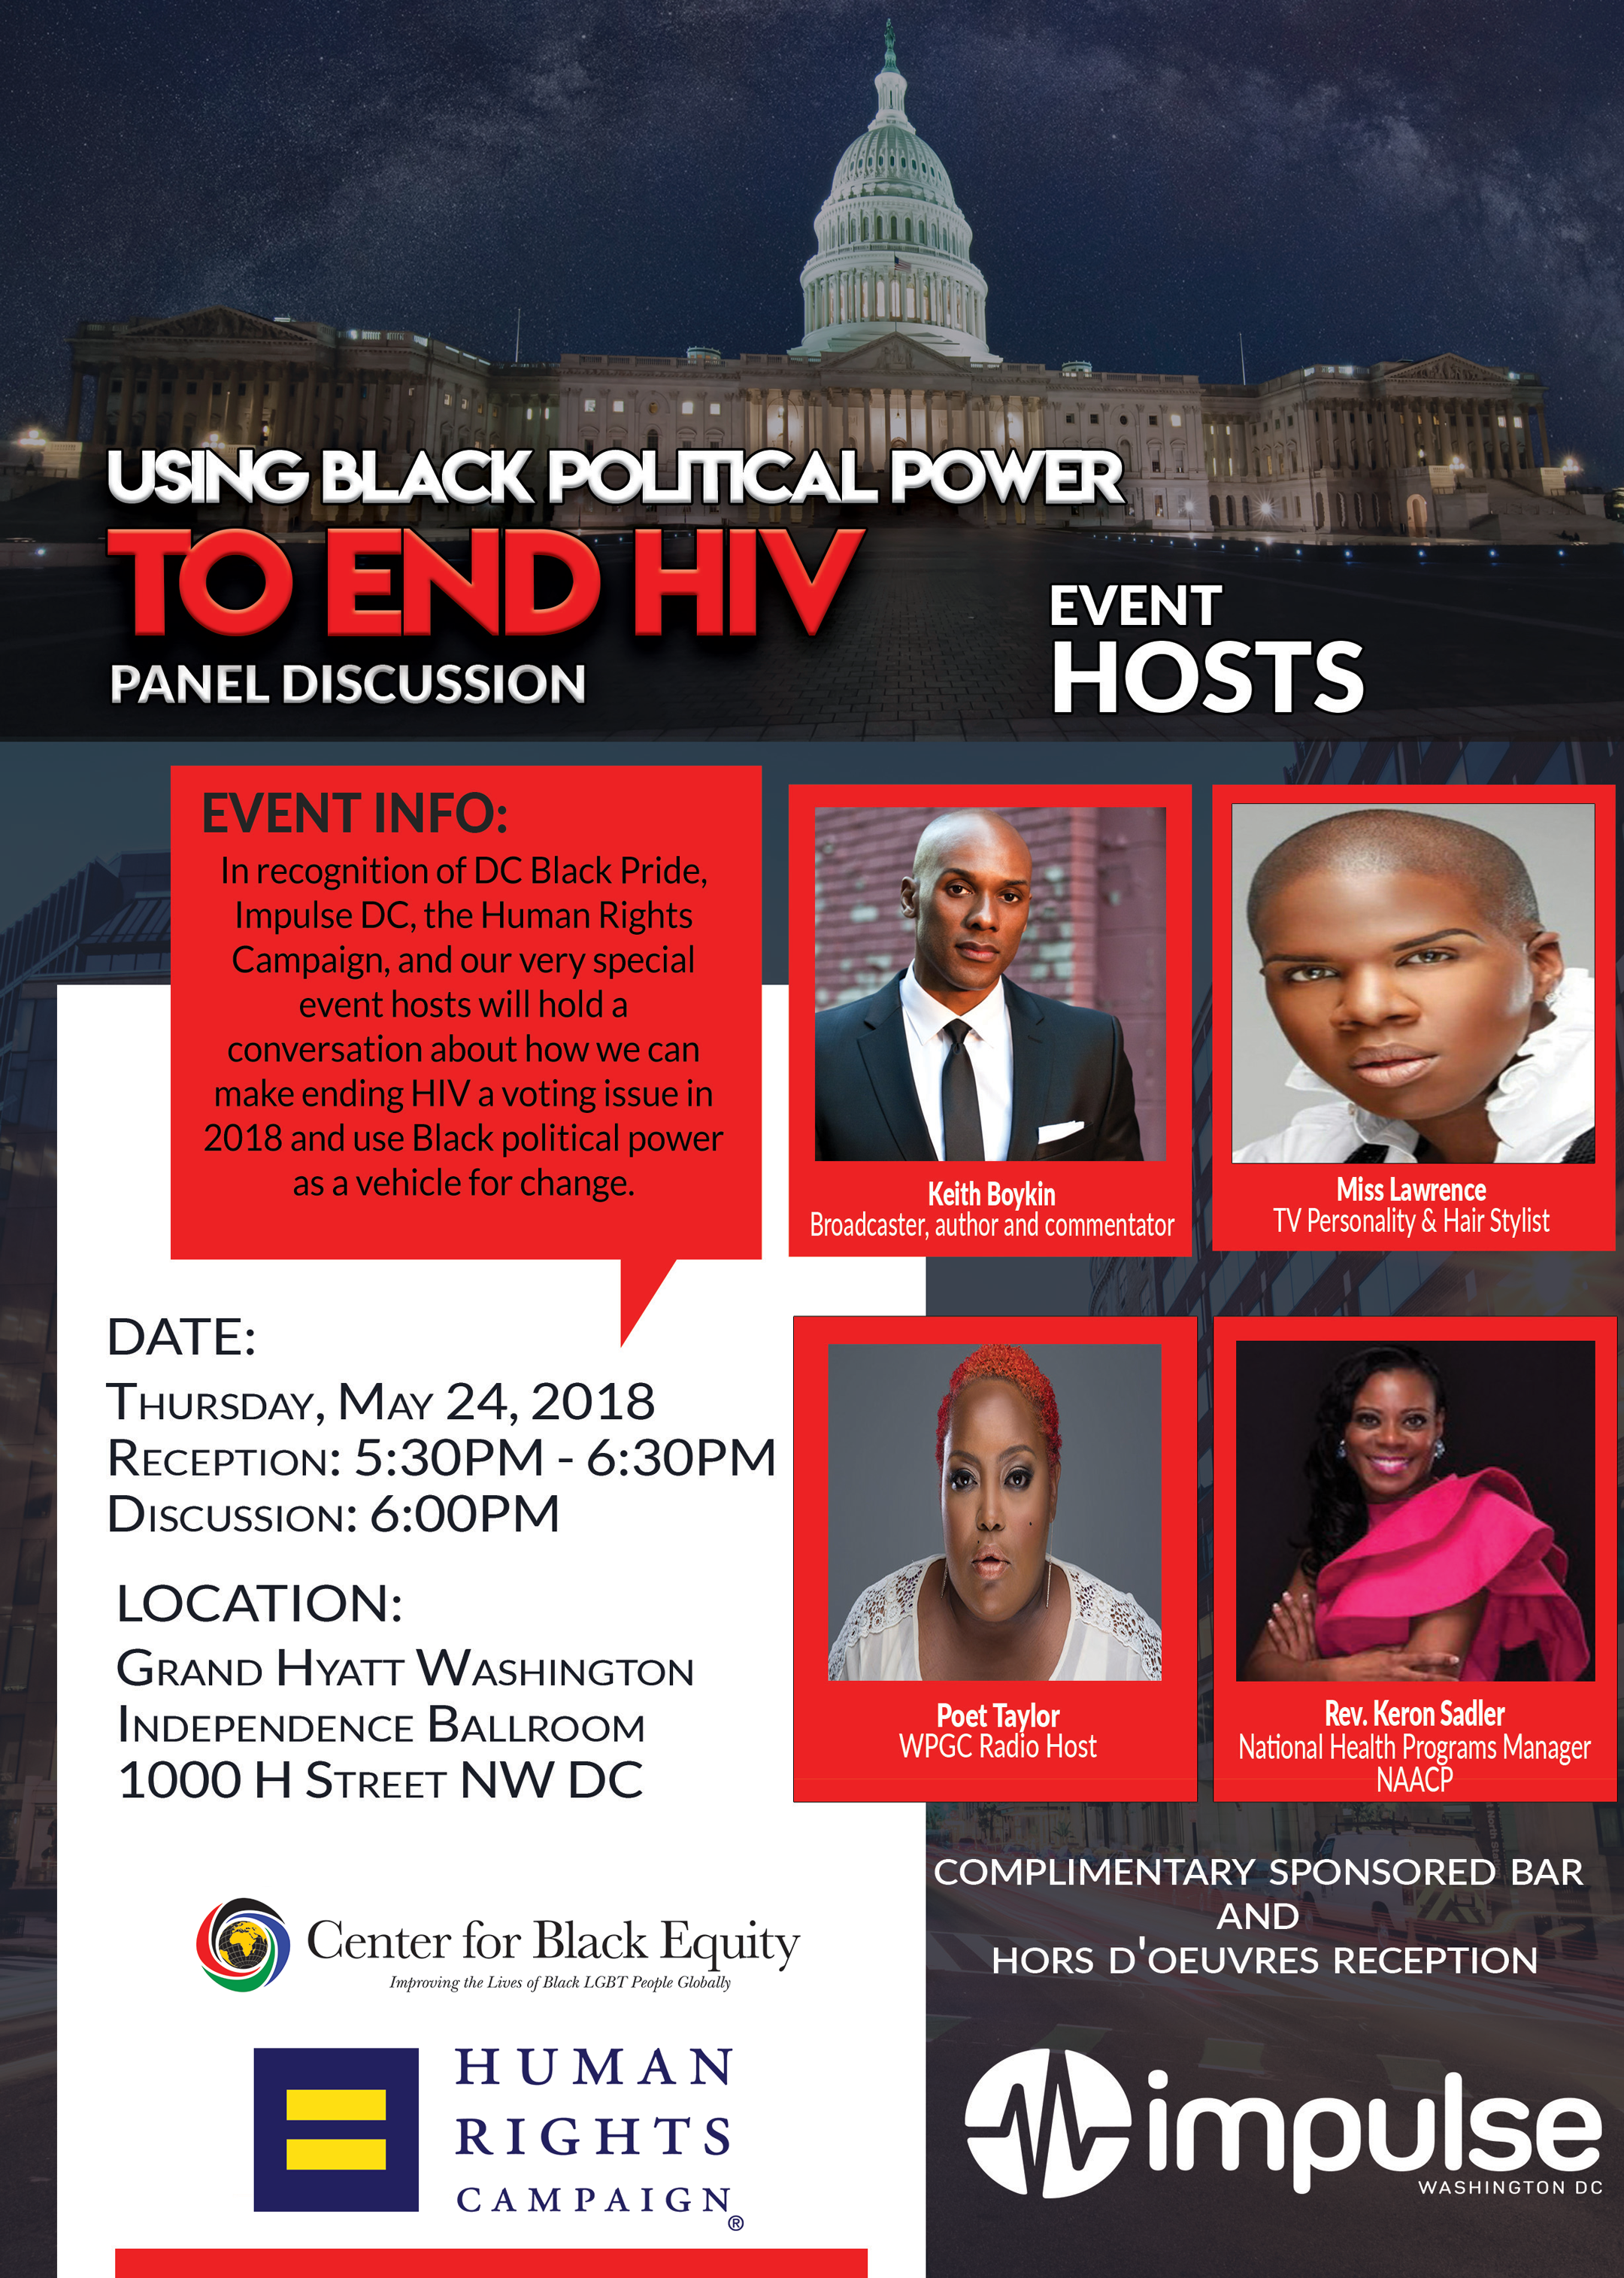 Using Black Political Power to End HIV Panel Discussion